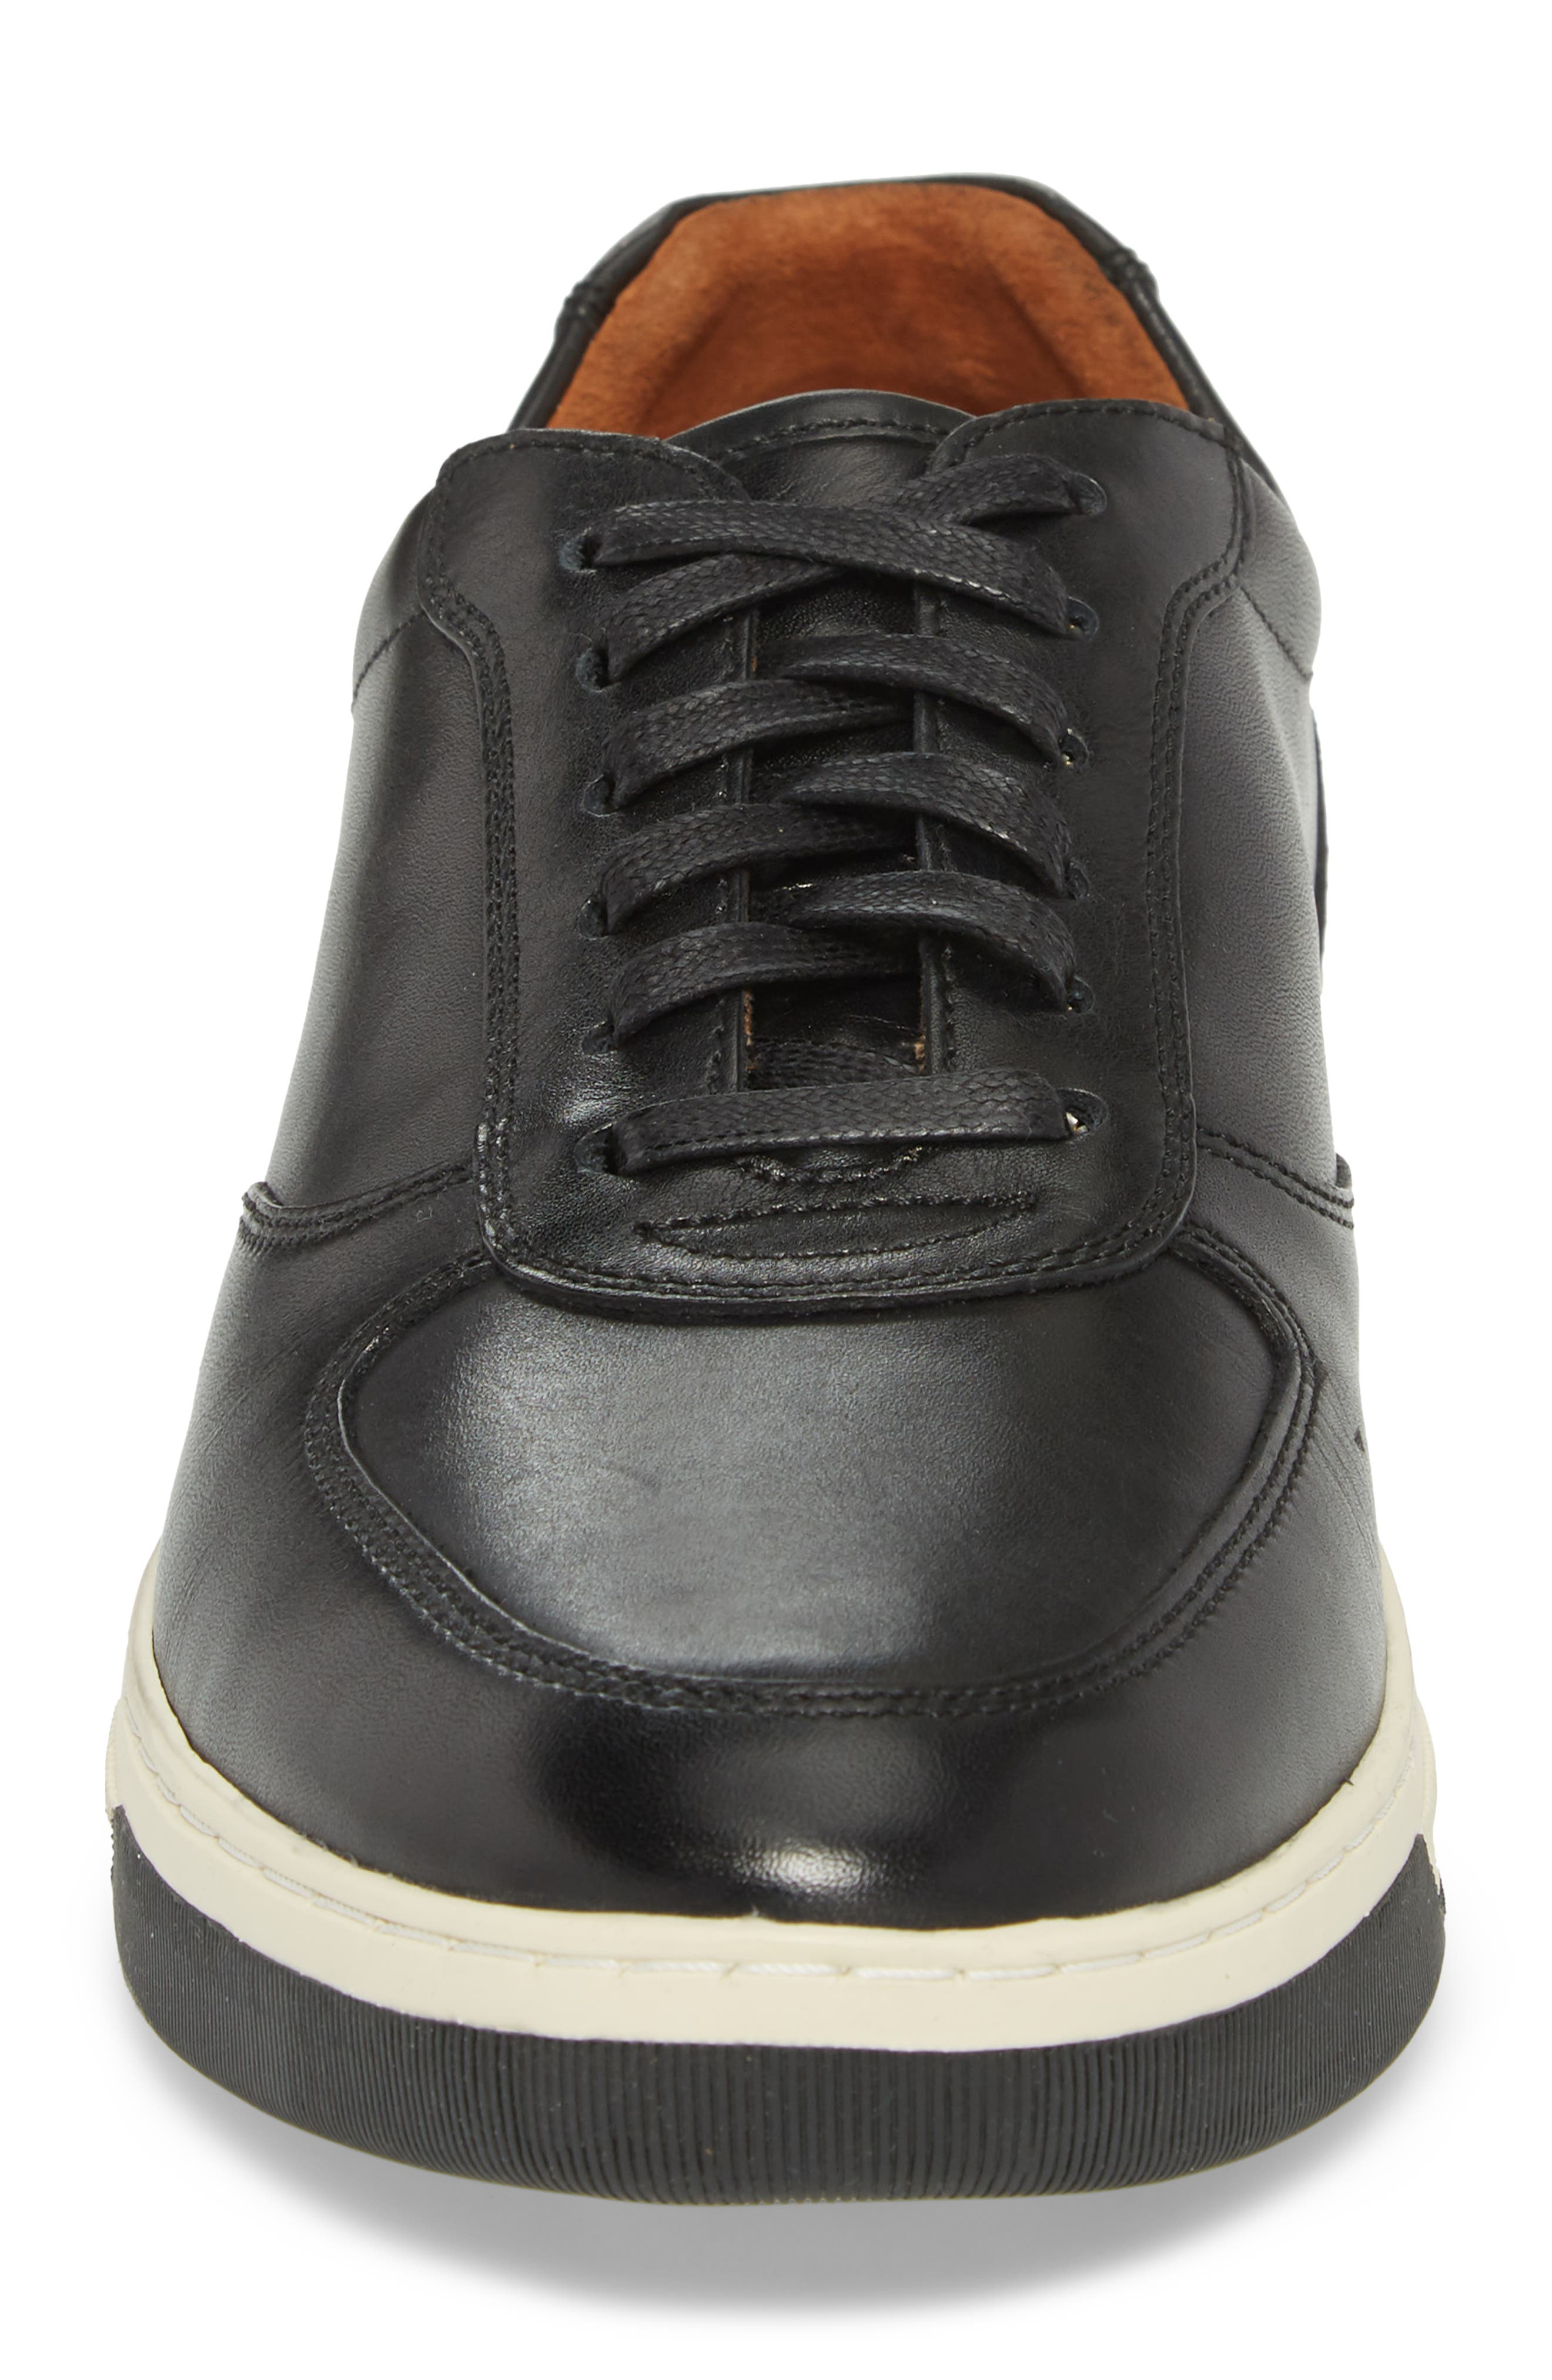 Fenton Low Top Sneaker,                             Alternate thumbnail 4, color,                             Black Leather